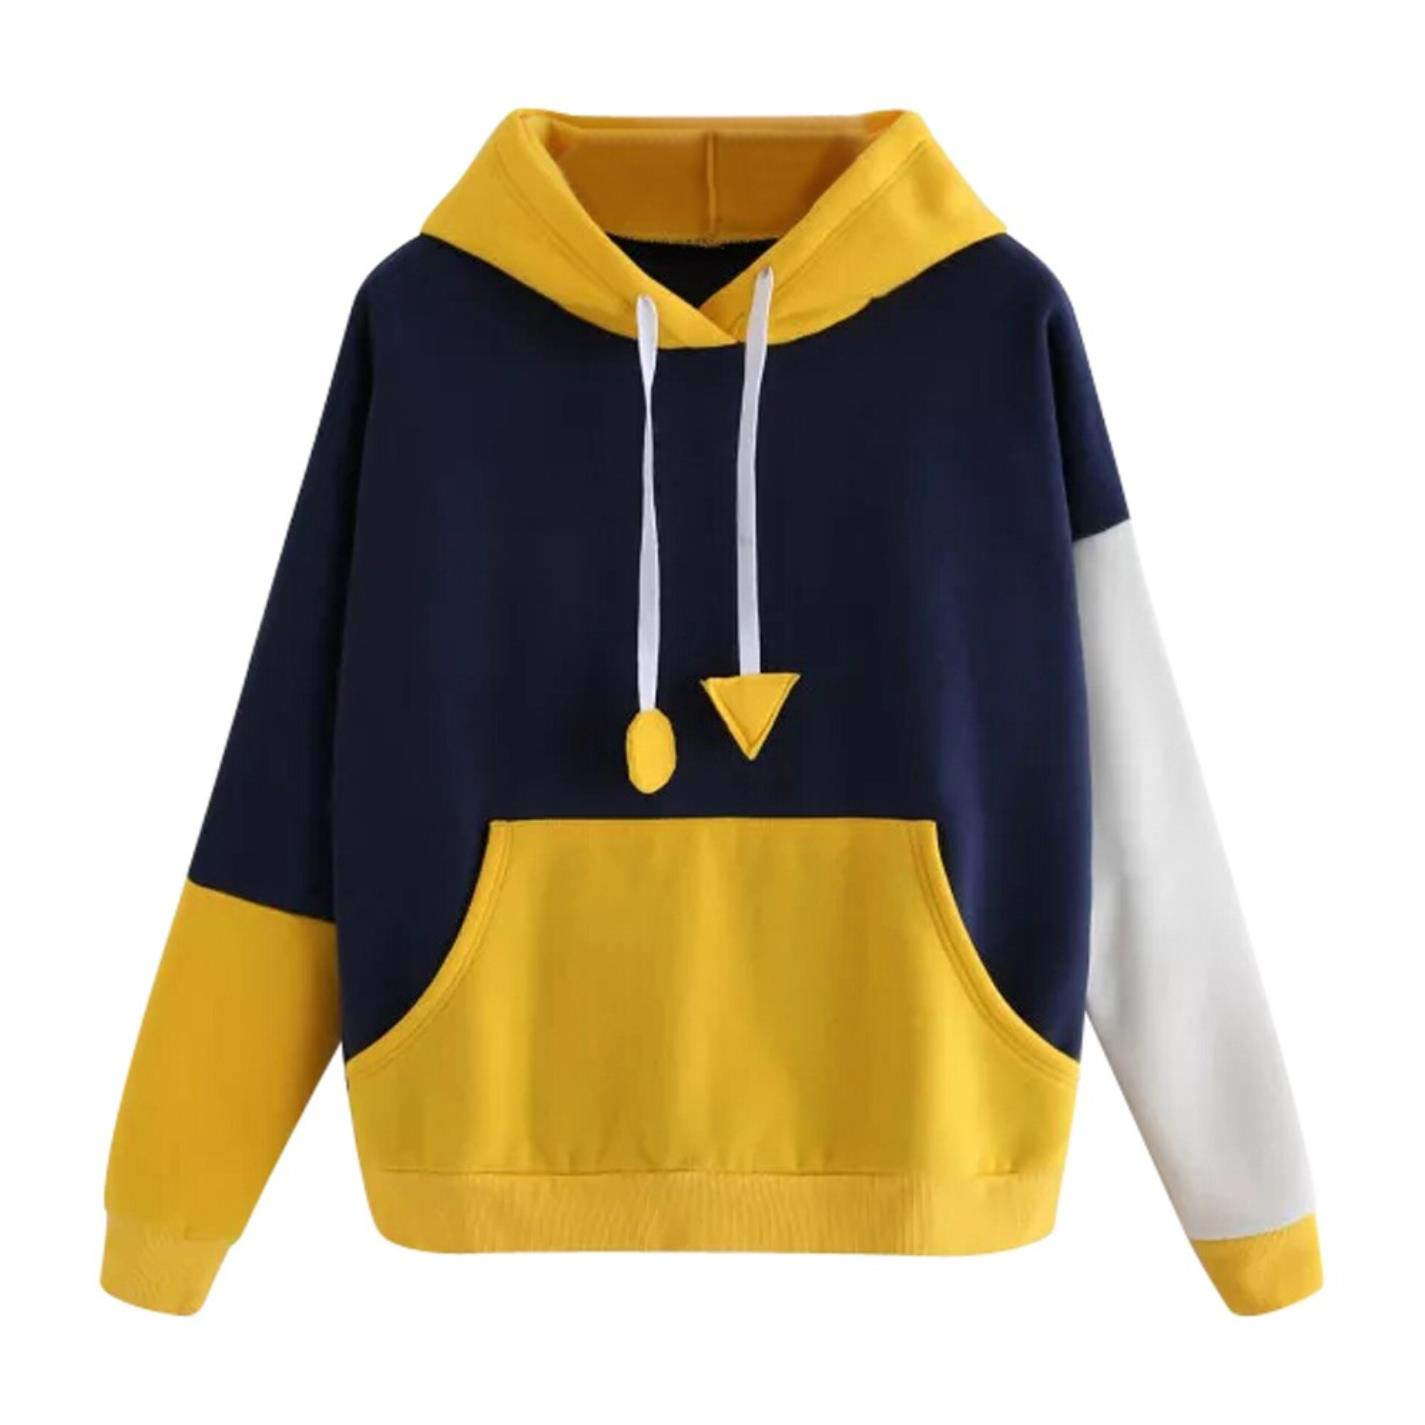 IUtan Women Streetwear Color Block Pocket Korean Style Hoodie Sweatshirt at Amazon Womens Clothing store: